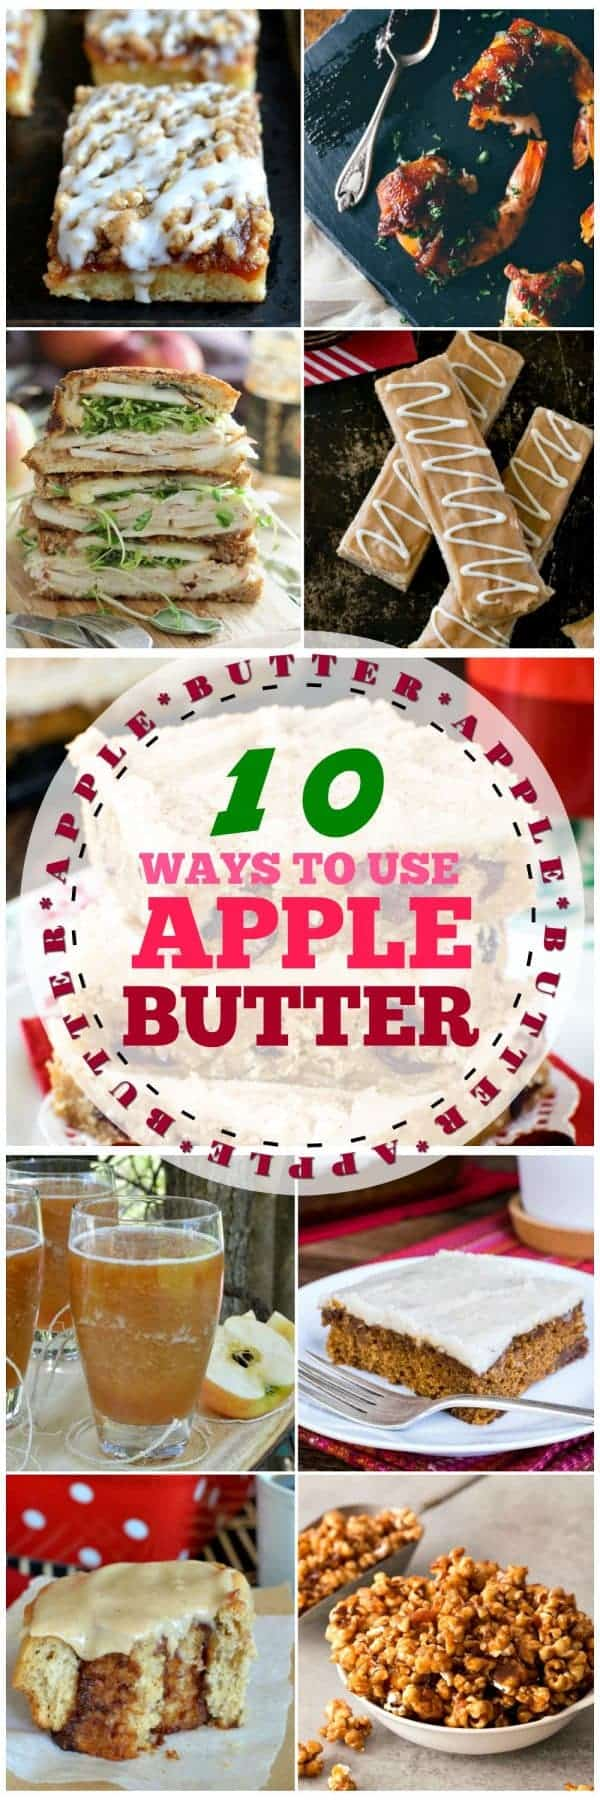 10 Ways to Use Apple Butter - adding apple butter to your sweet and savory recipes is a great way to enjoy a fall flavor!